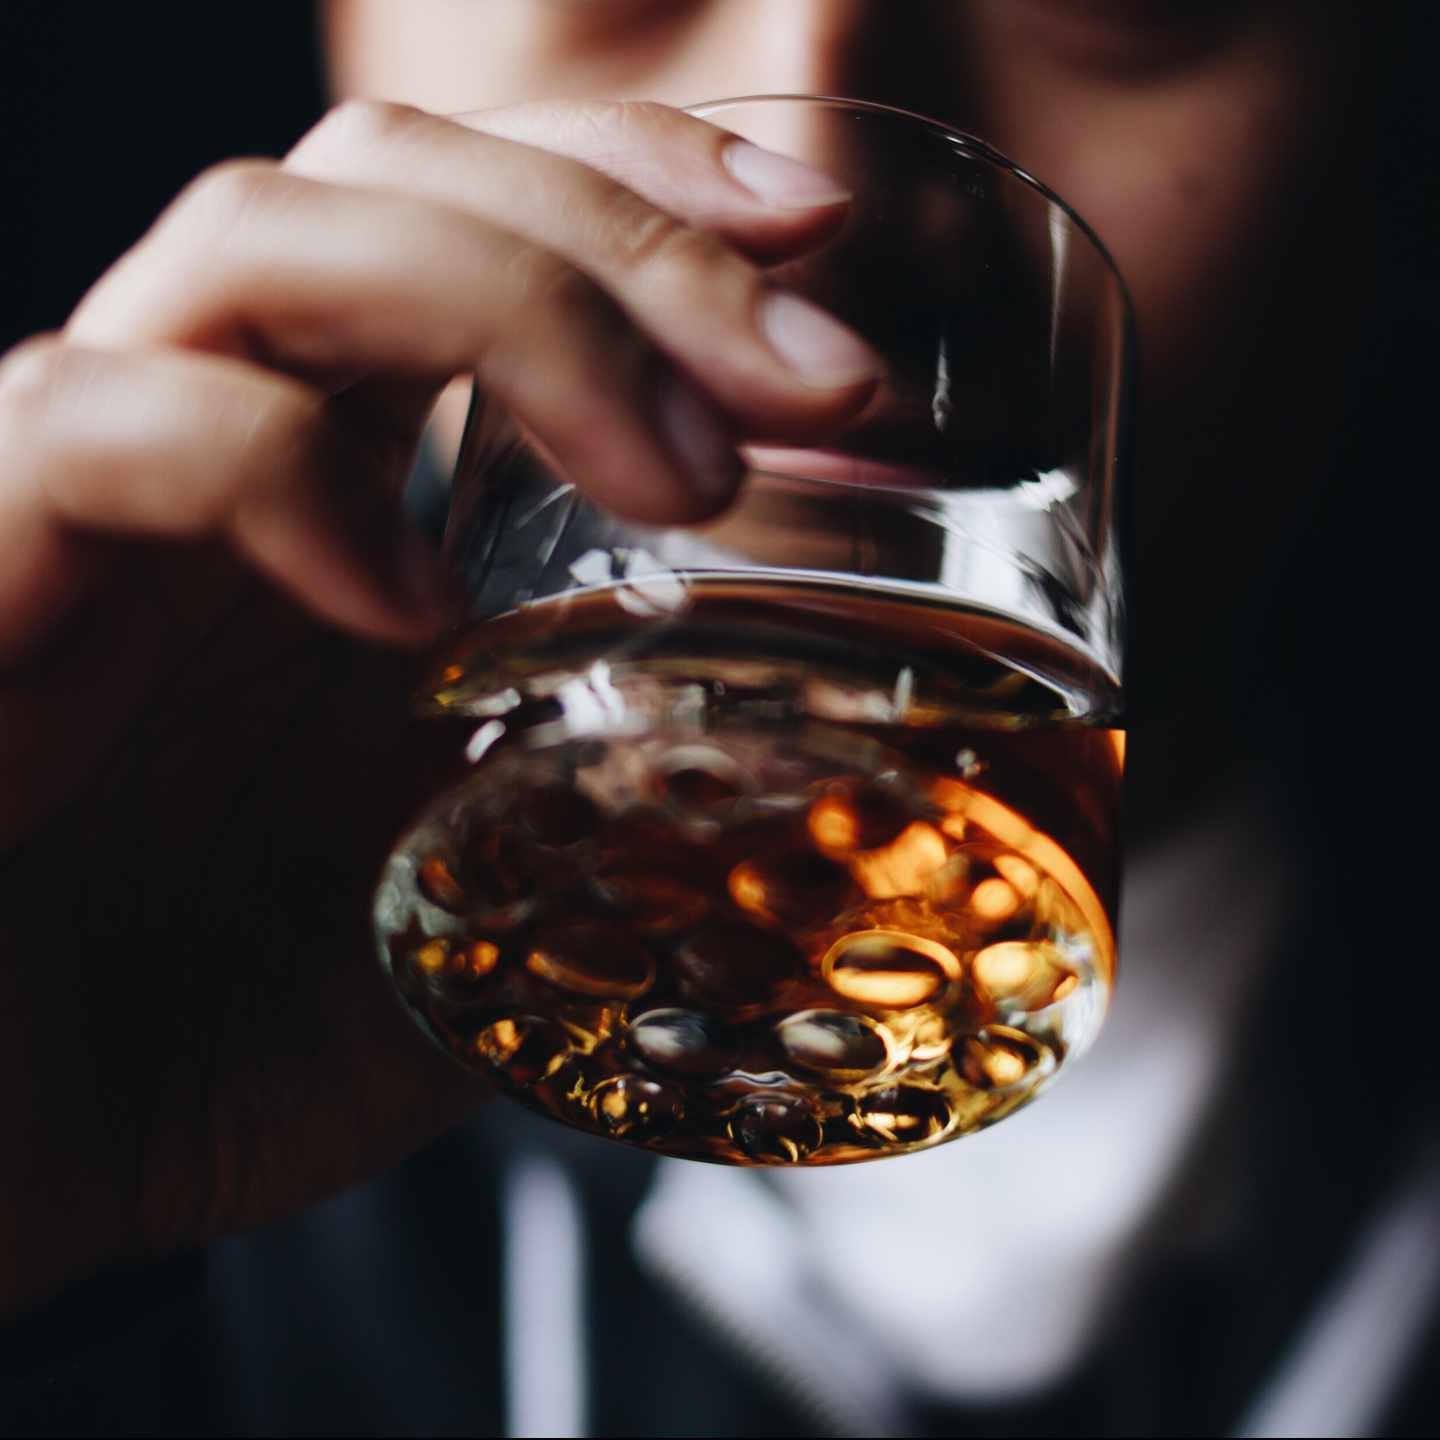 Close-up of glass of liquor being sipped.